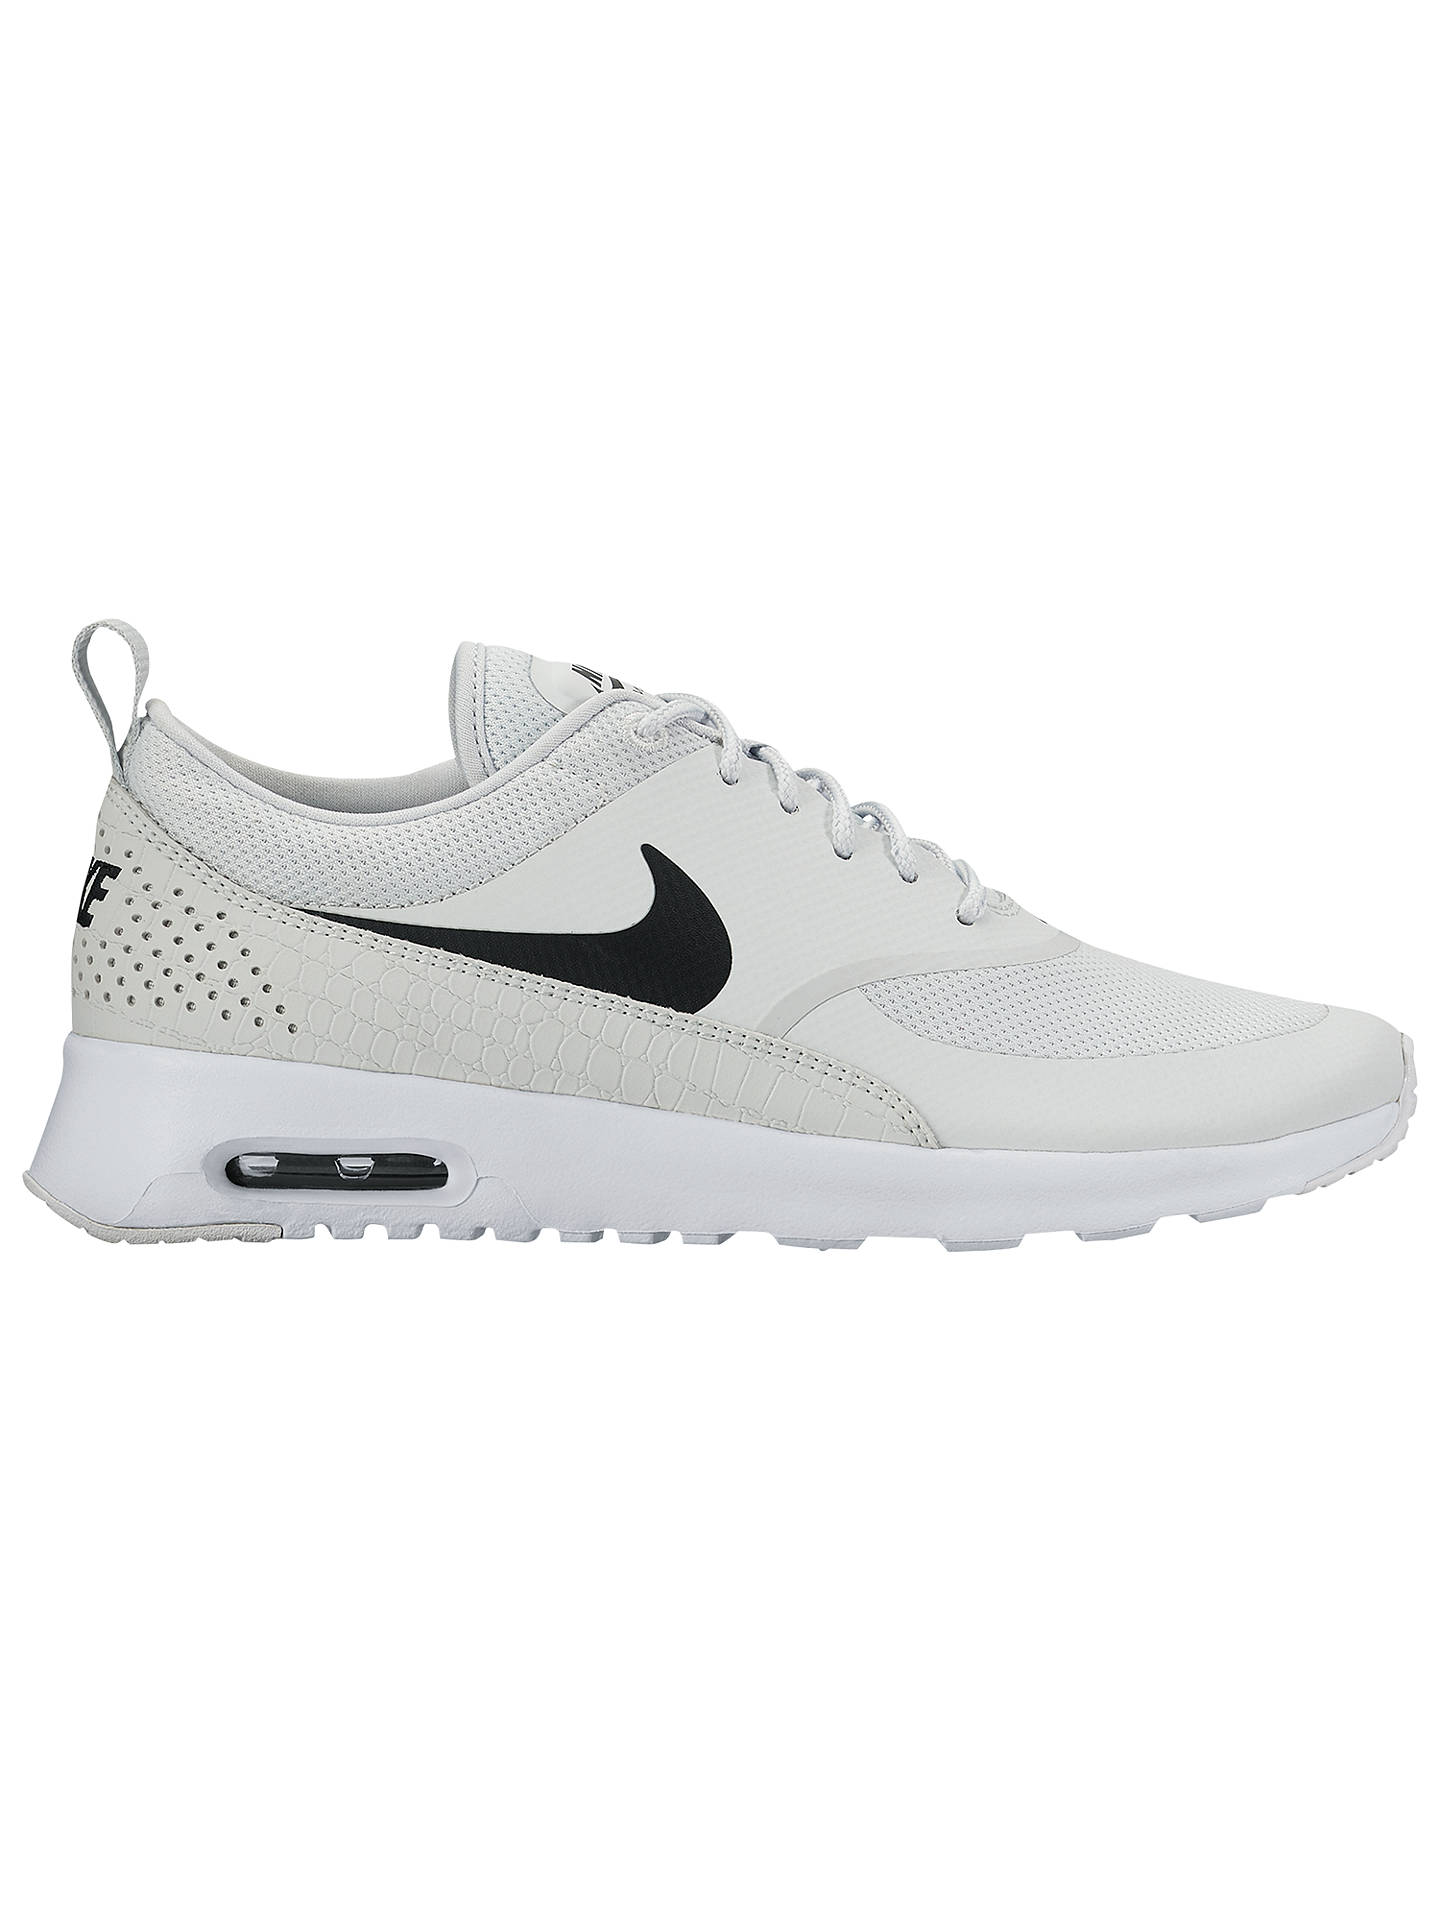 outlet store 4210e 16591 Buy Nike Air Max Thea Women s Trainers, Pure Platinum Black, 4 Online at ...